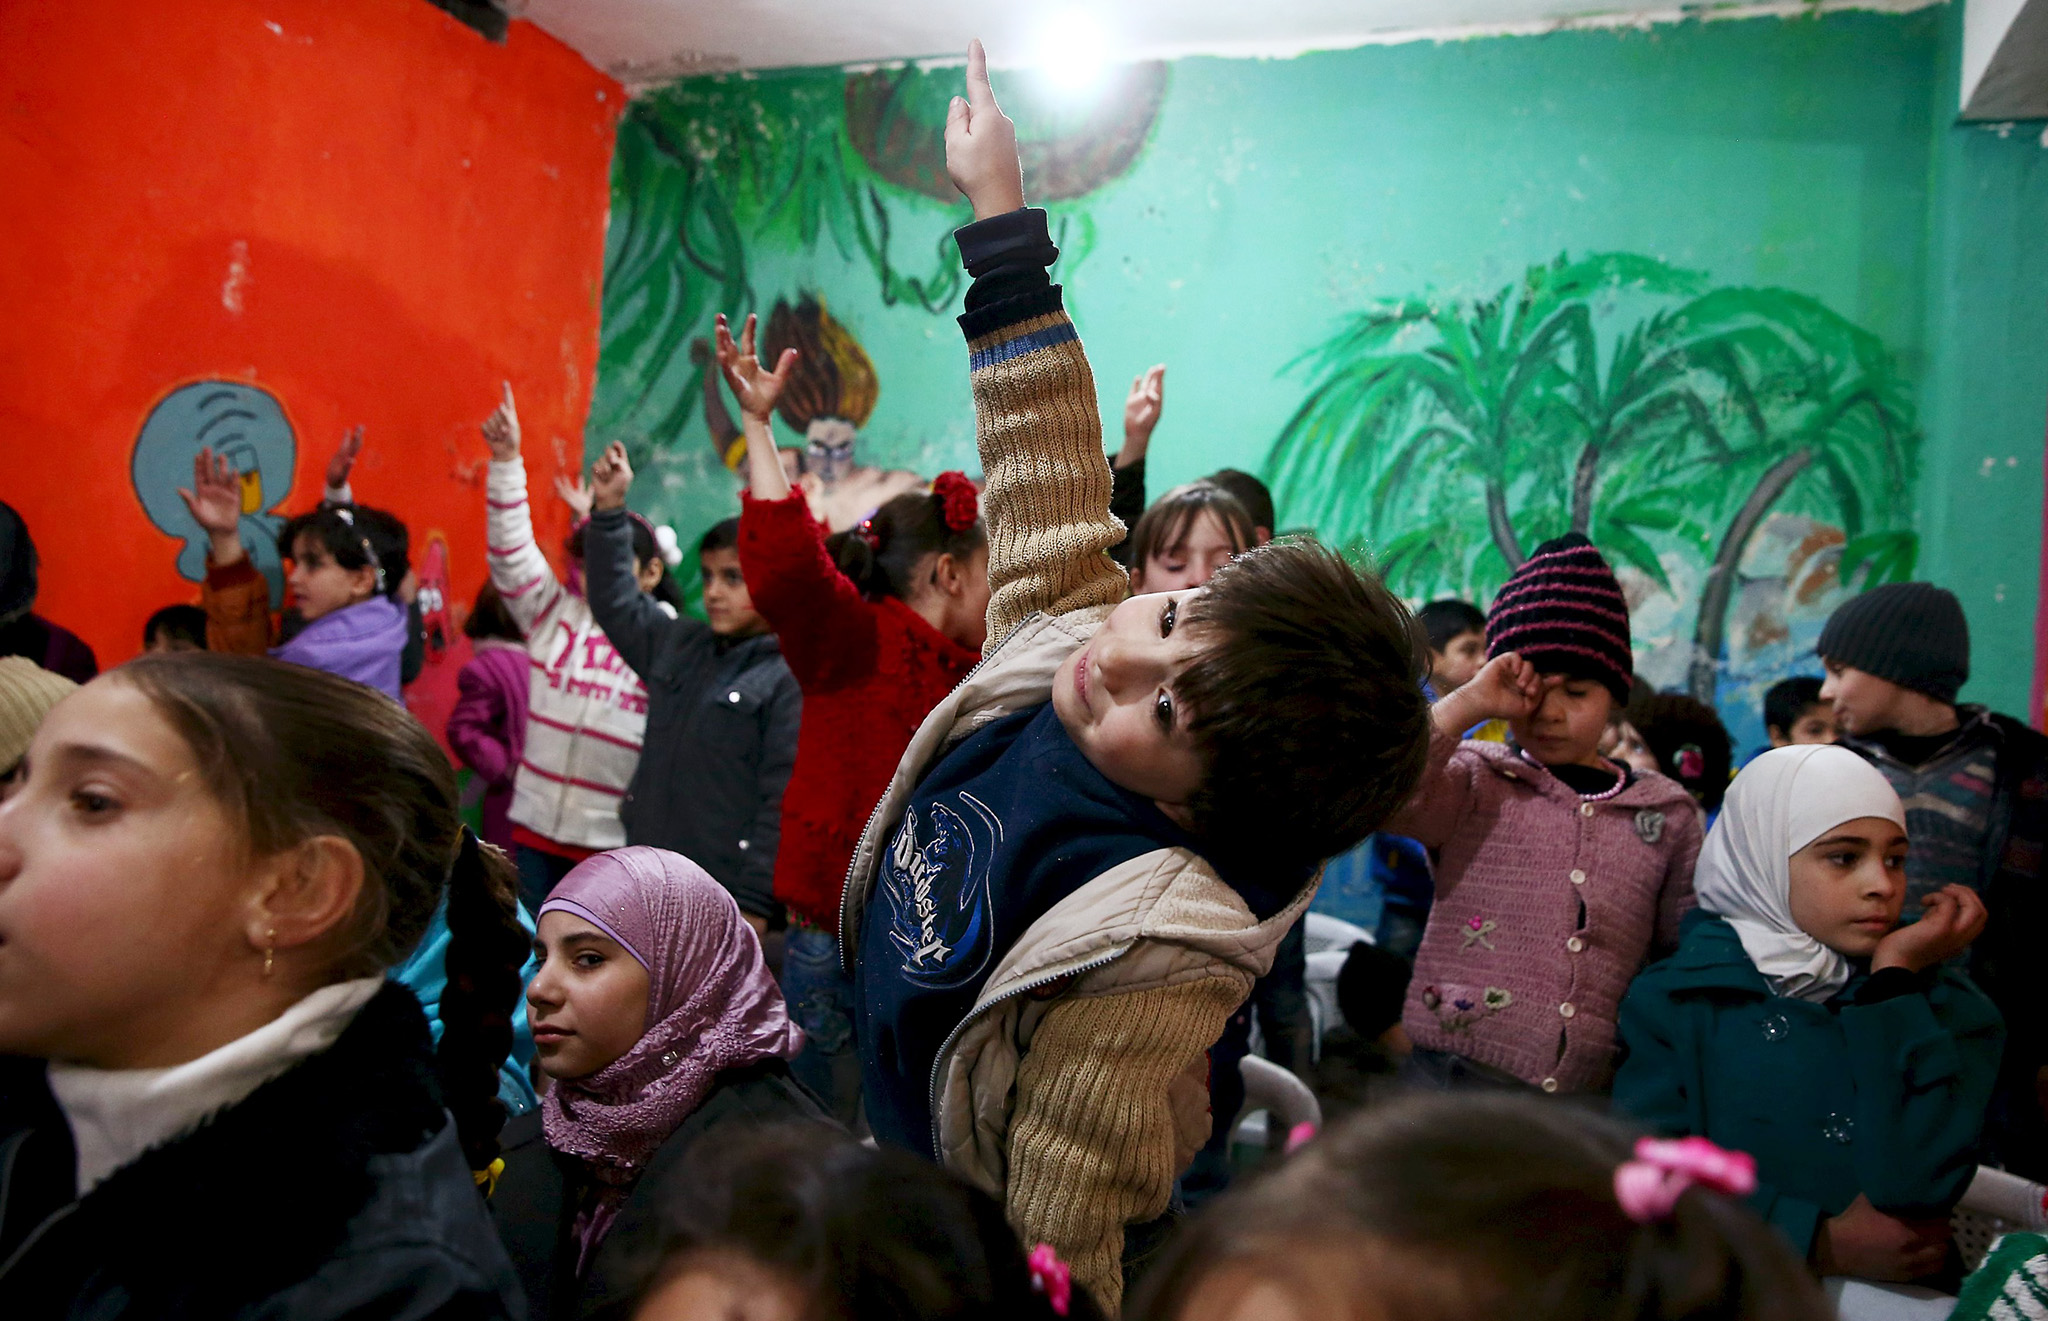 Children attend a party for children affected by war and in need for psychological support, in the Douma neighborhood of Damascus...Children attend a party for children affected by war and in need for psychological support, in the Douma neighborhood of Damascus, Syria January 24, 2016. The party was organized by the Syrian Arab Red Crescent. Picture taken January 24, 2016. REUTERS/Bassam Khabieh